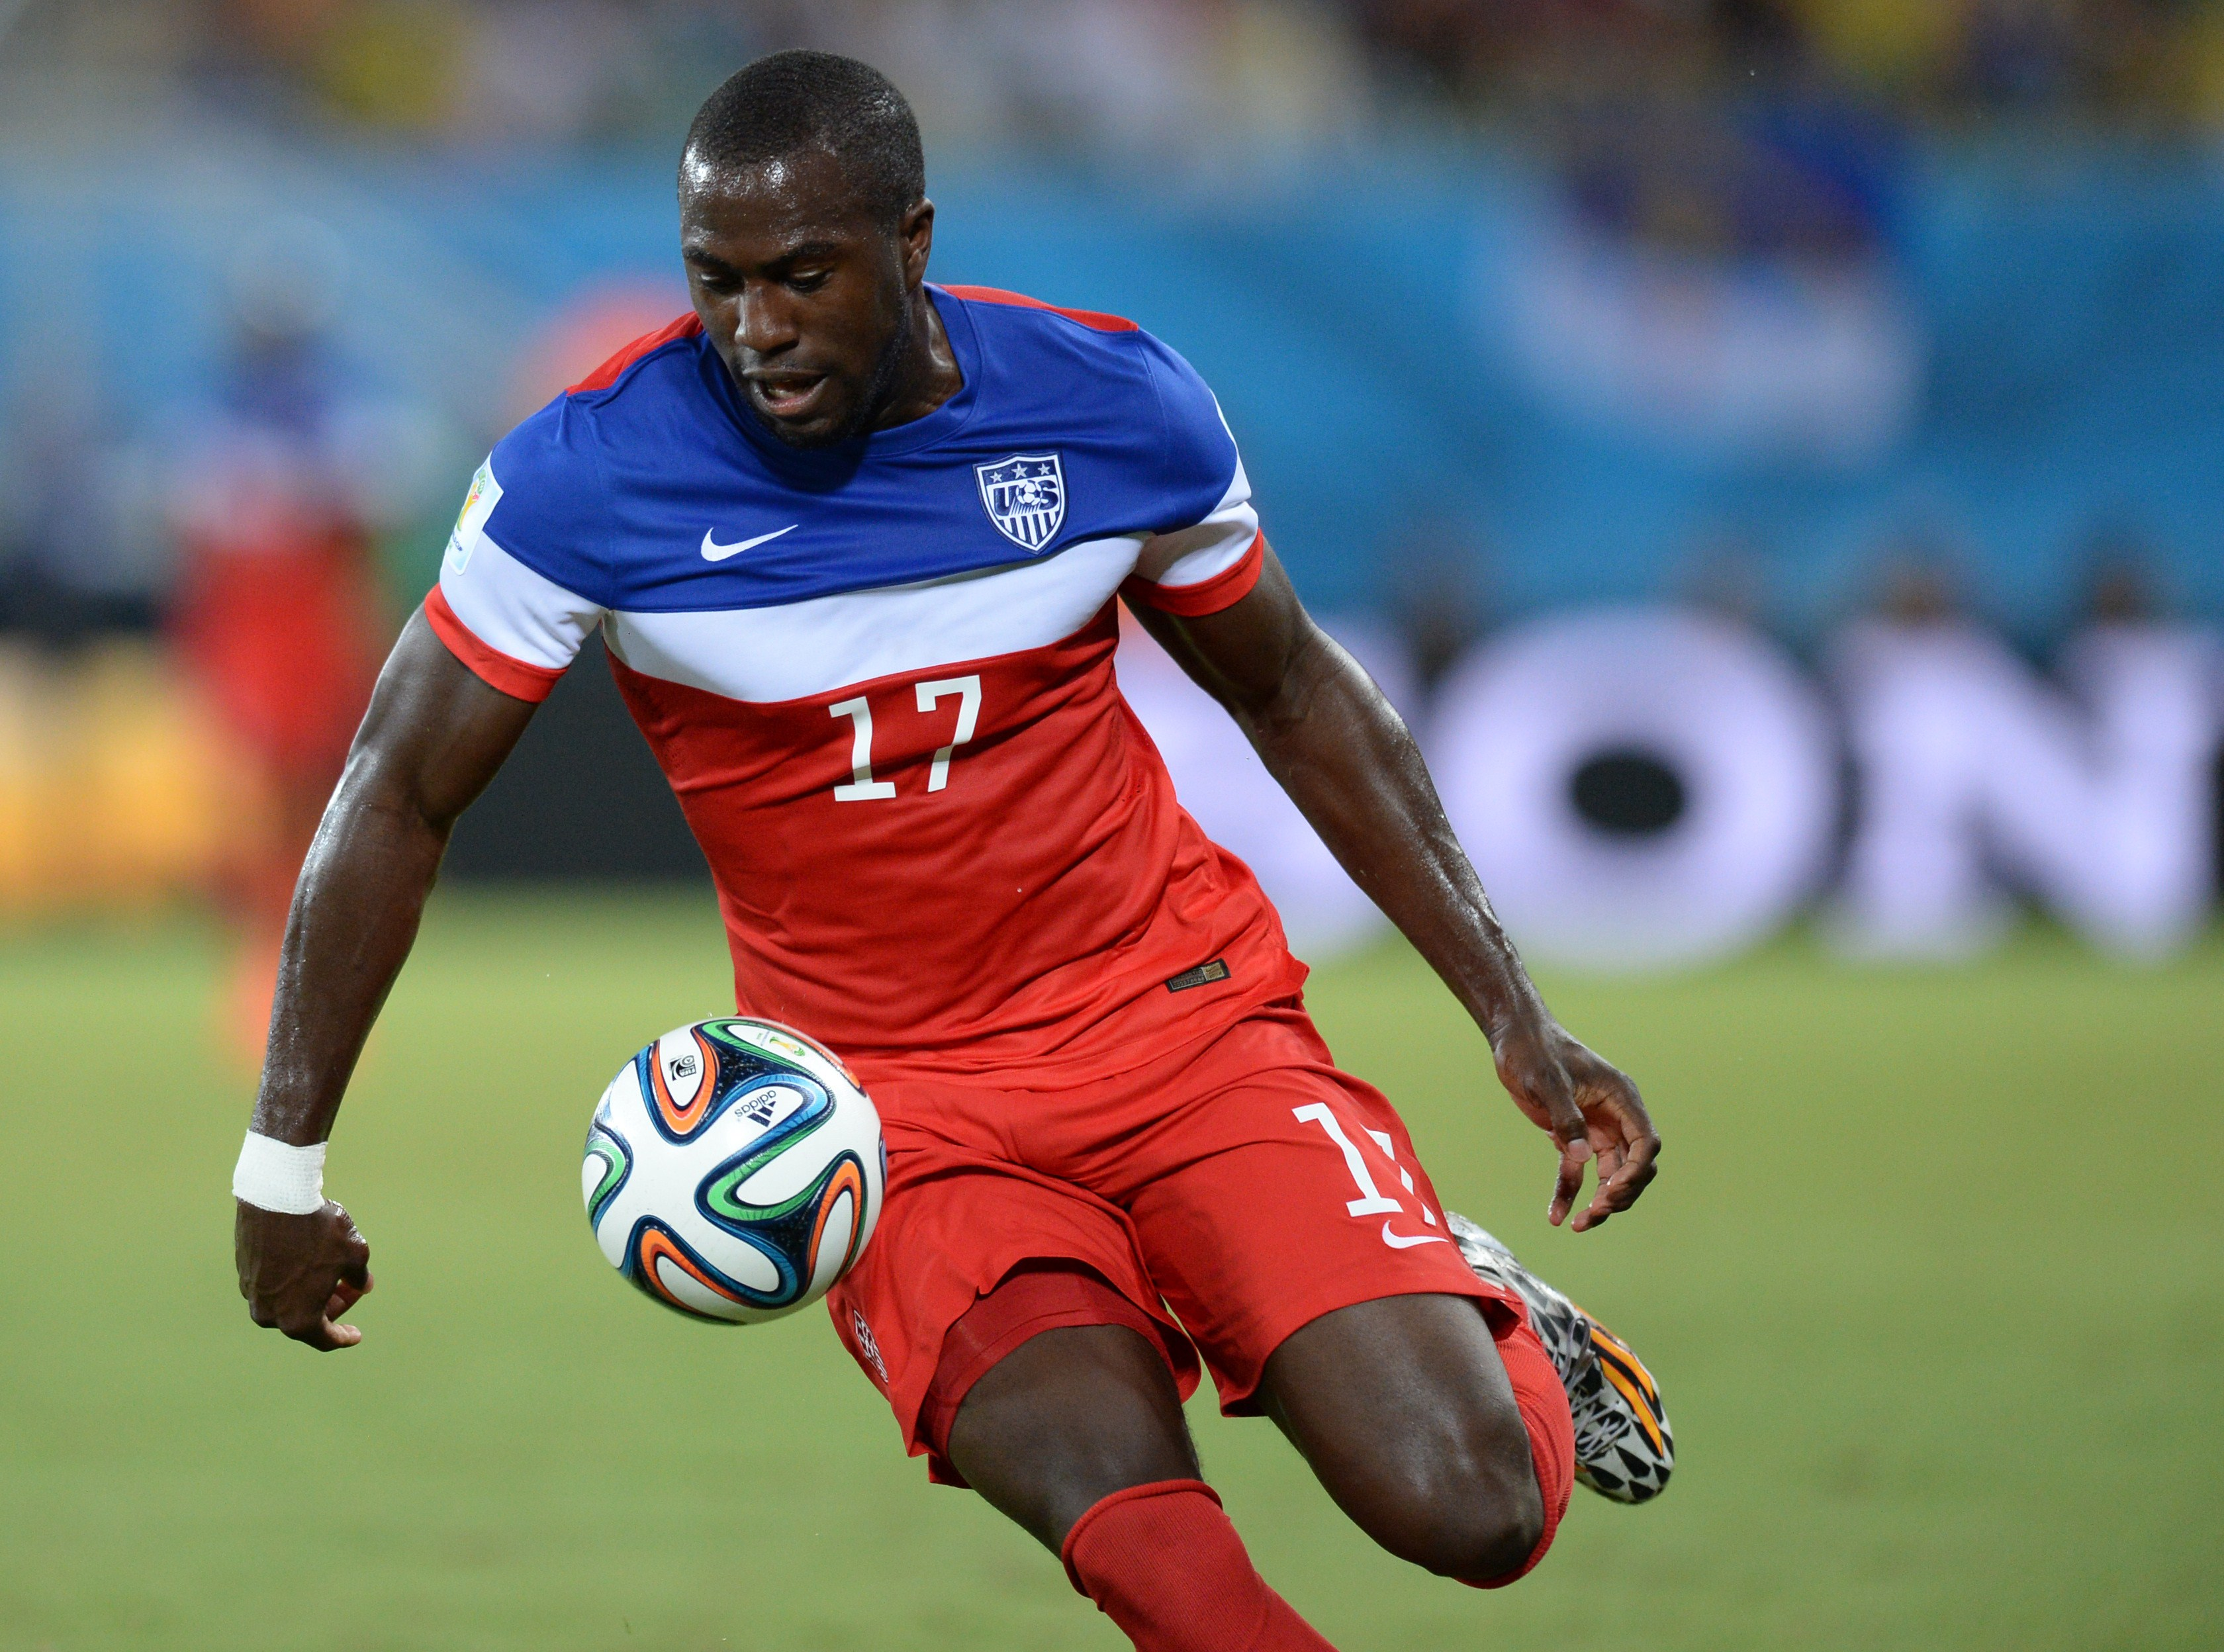 US forward Jozy Altidore controls the ball during a Group G football match between Ghana and US at the Dunas Arena in Natal during the 2014 FIFA World Cup on June 16, 2014.   AFP PHOTO / CARL DE SOUZA        (Photo credit should read CARL DE SOUZA/AFP/Getty Images)